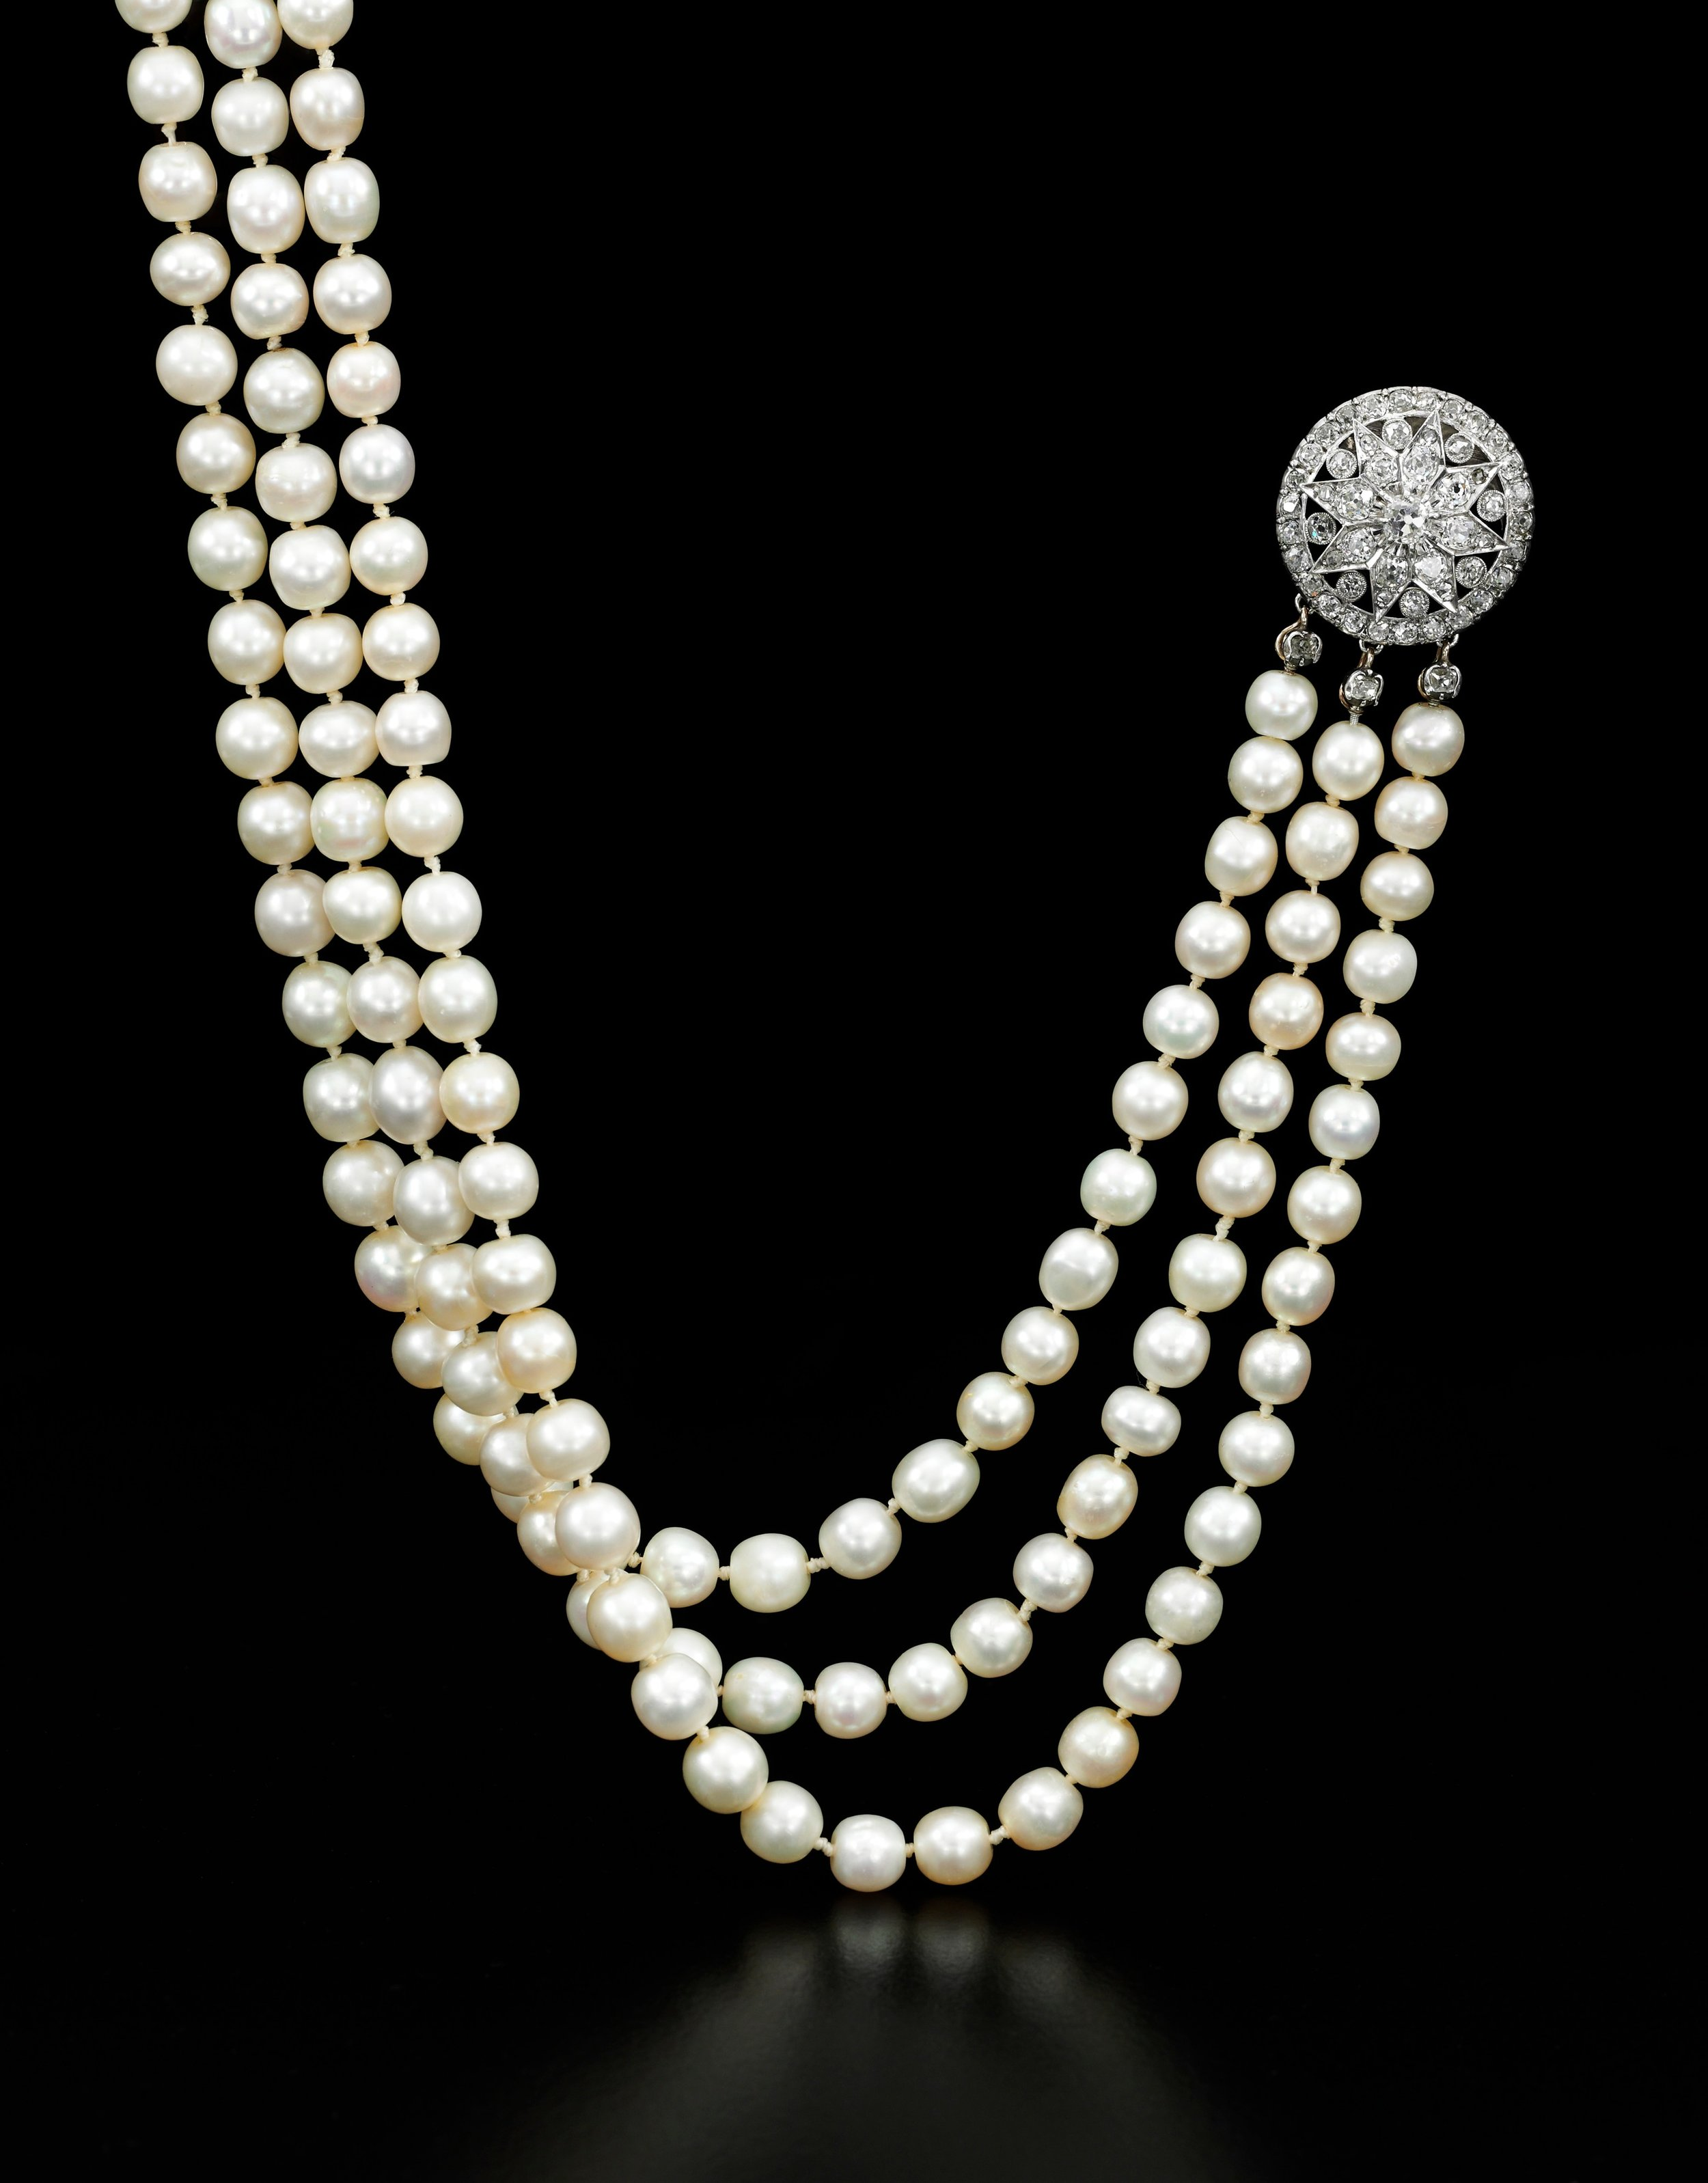 Important natural pearl and diamond necklace - on black - Royal Jewels from the Bourbon Parma Family - Sotheby's 14 November 2018.jpg